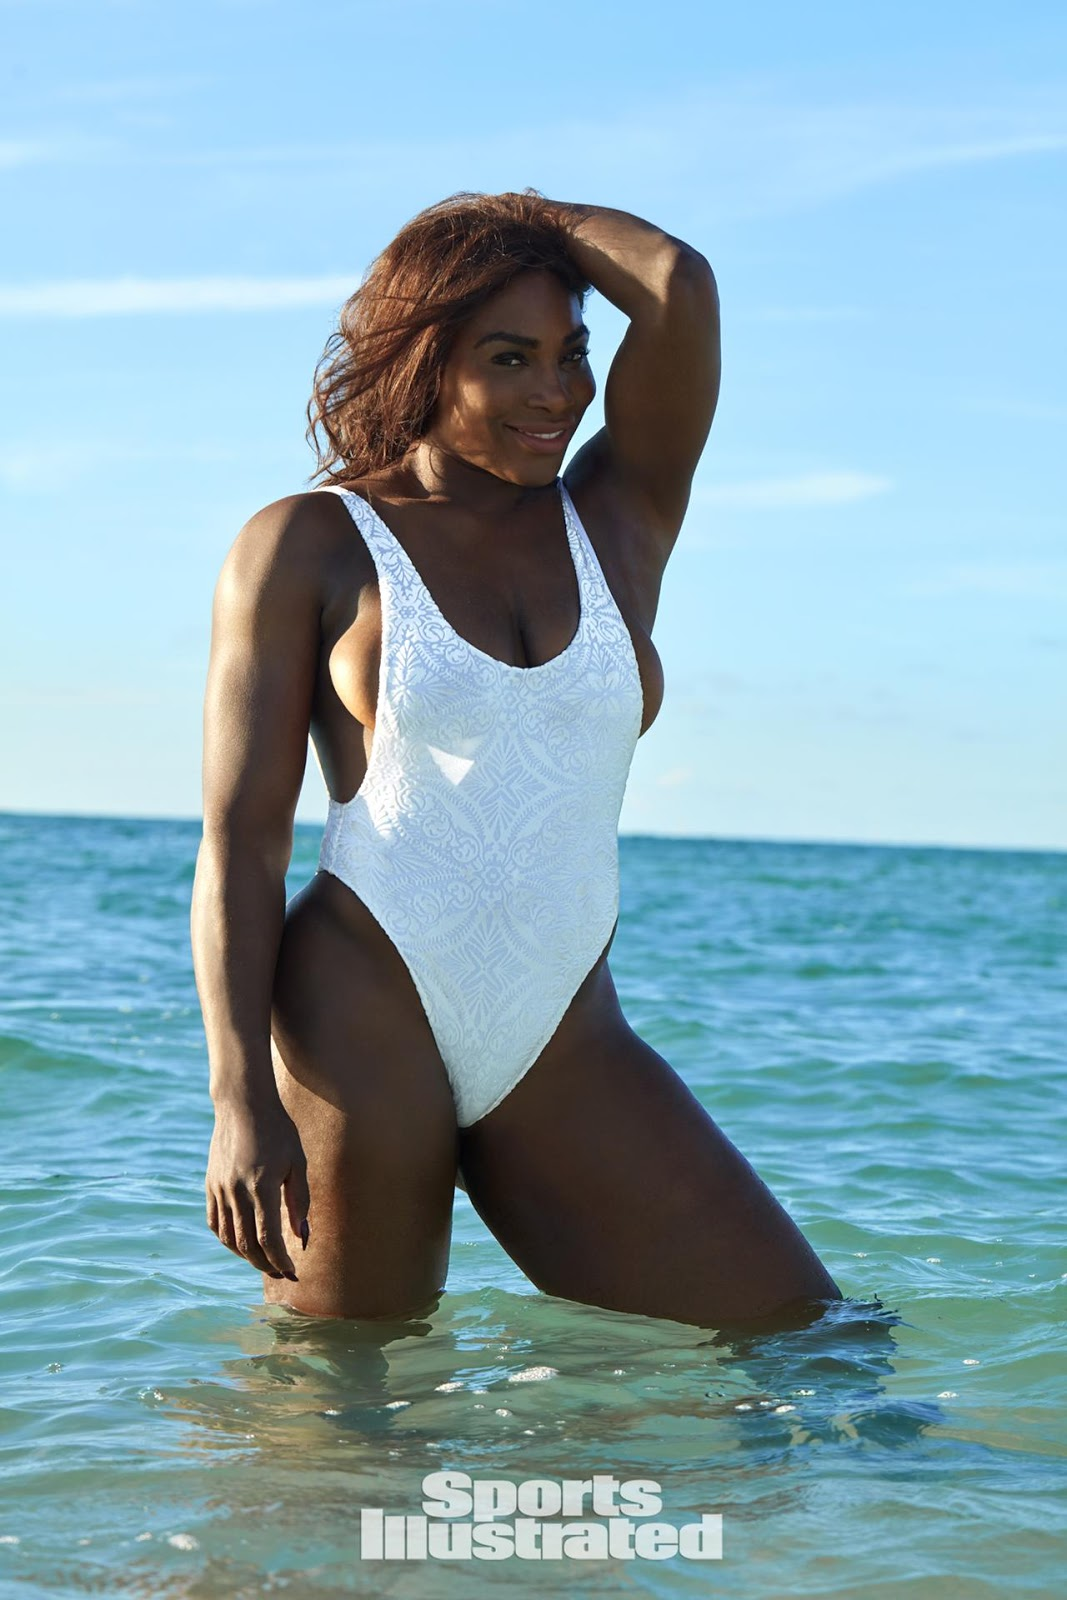 Serena Williams in Sports Illustrated Swimsuit Issue